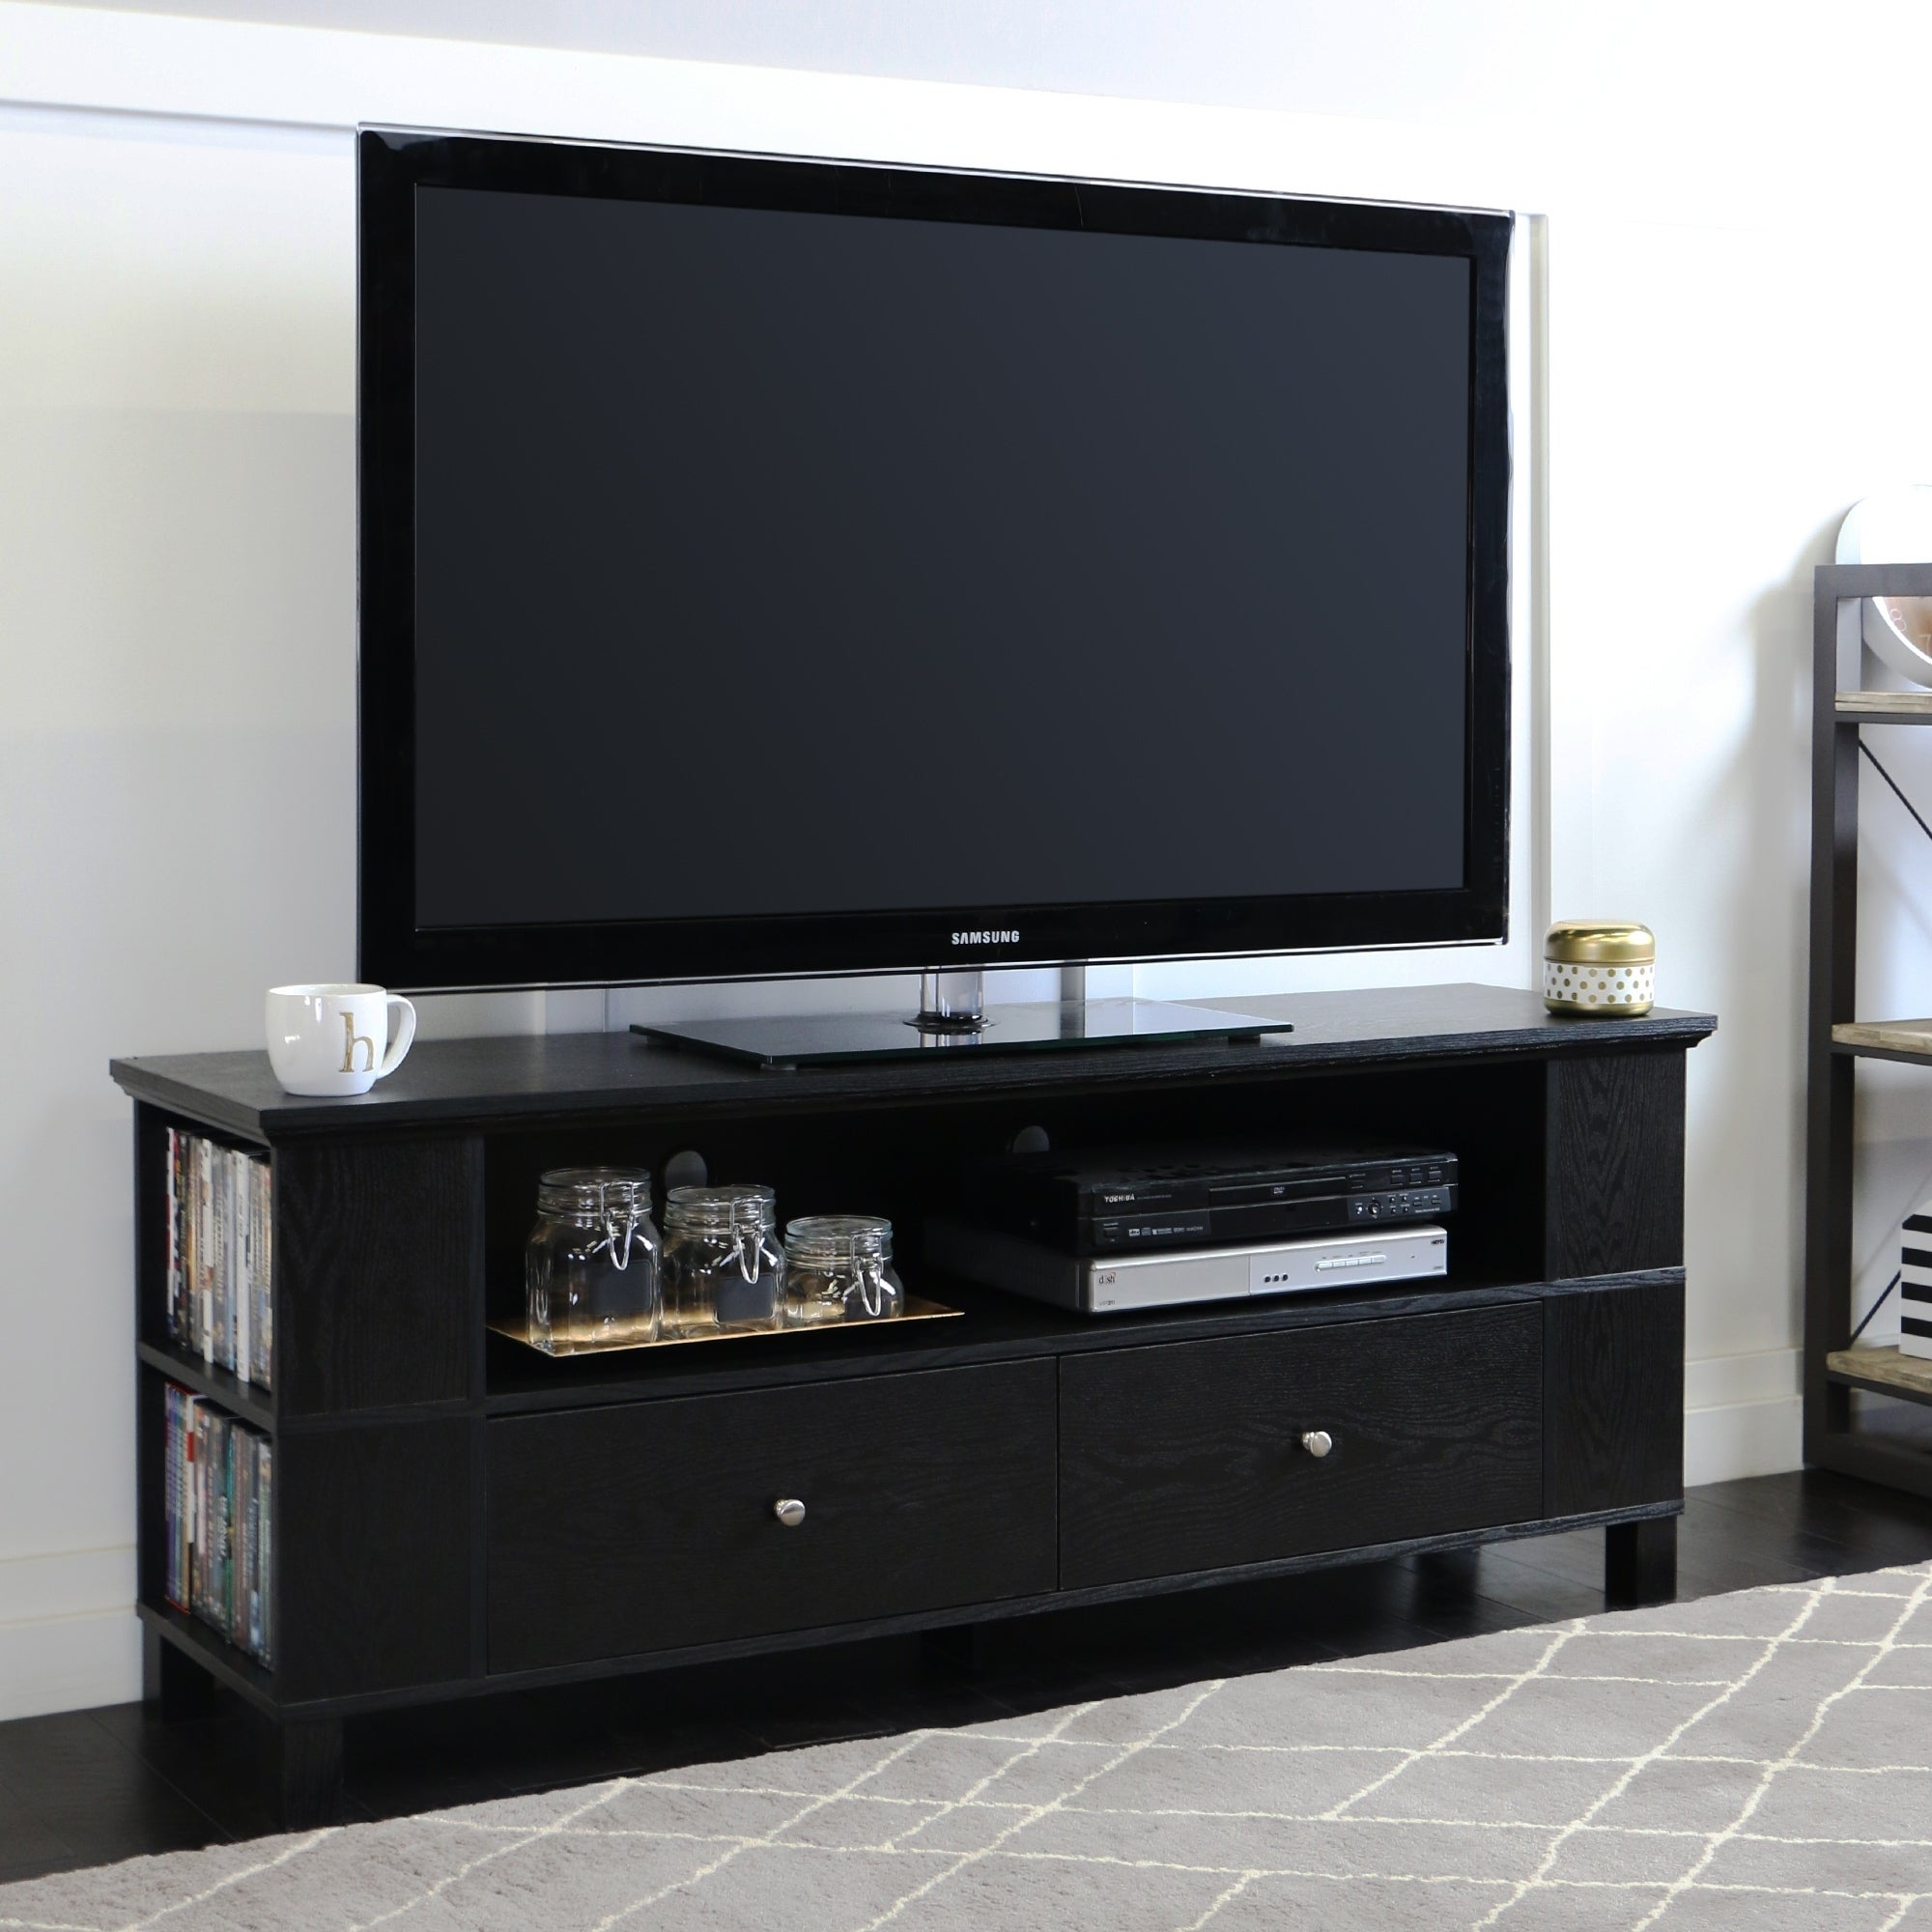 Black Wood 60inch TV Stand Free Shipping Today Overstock 13350351